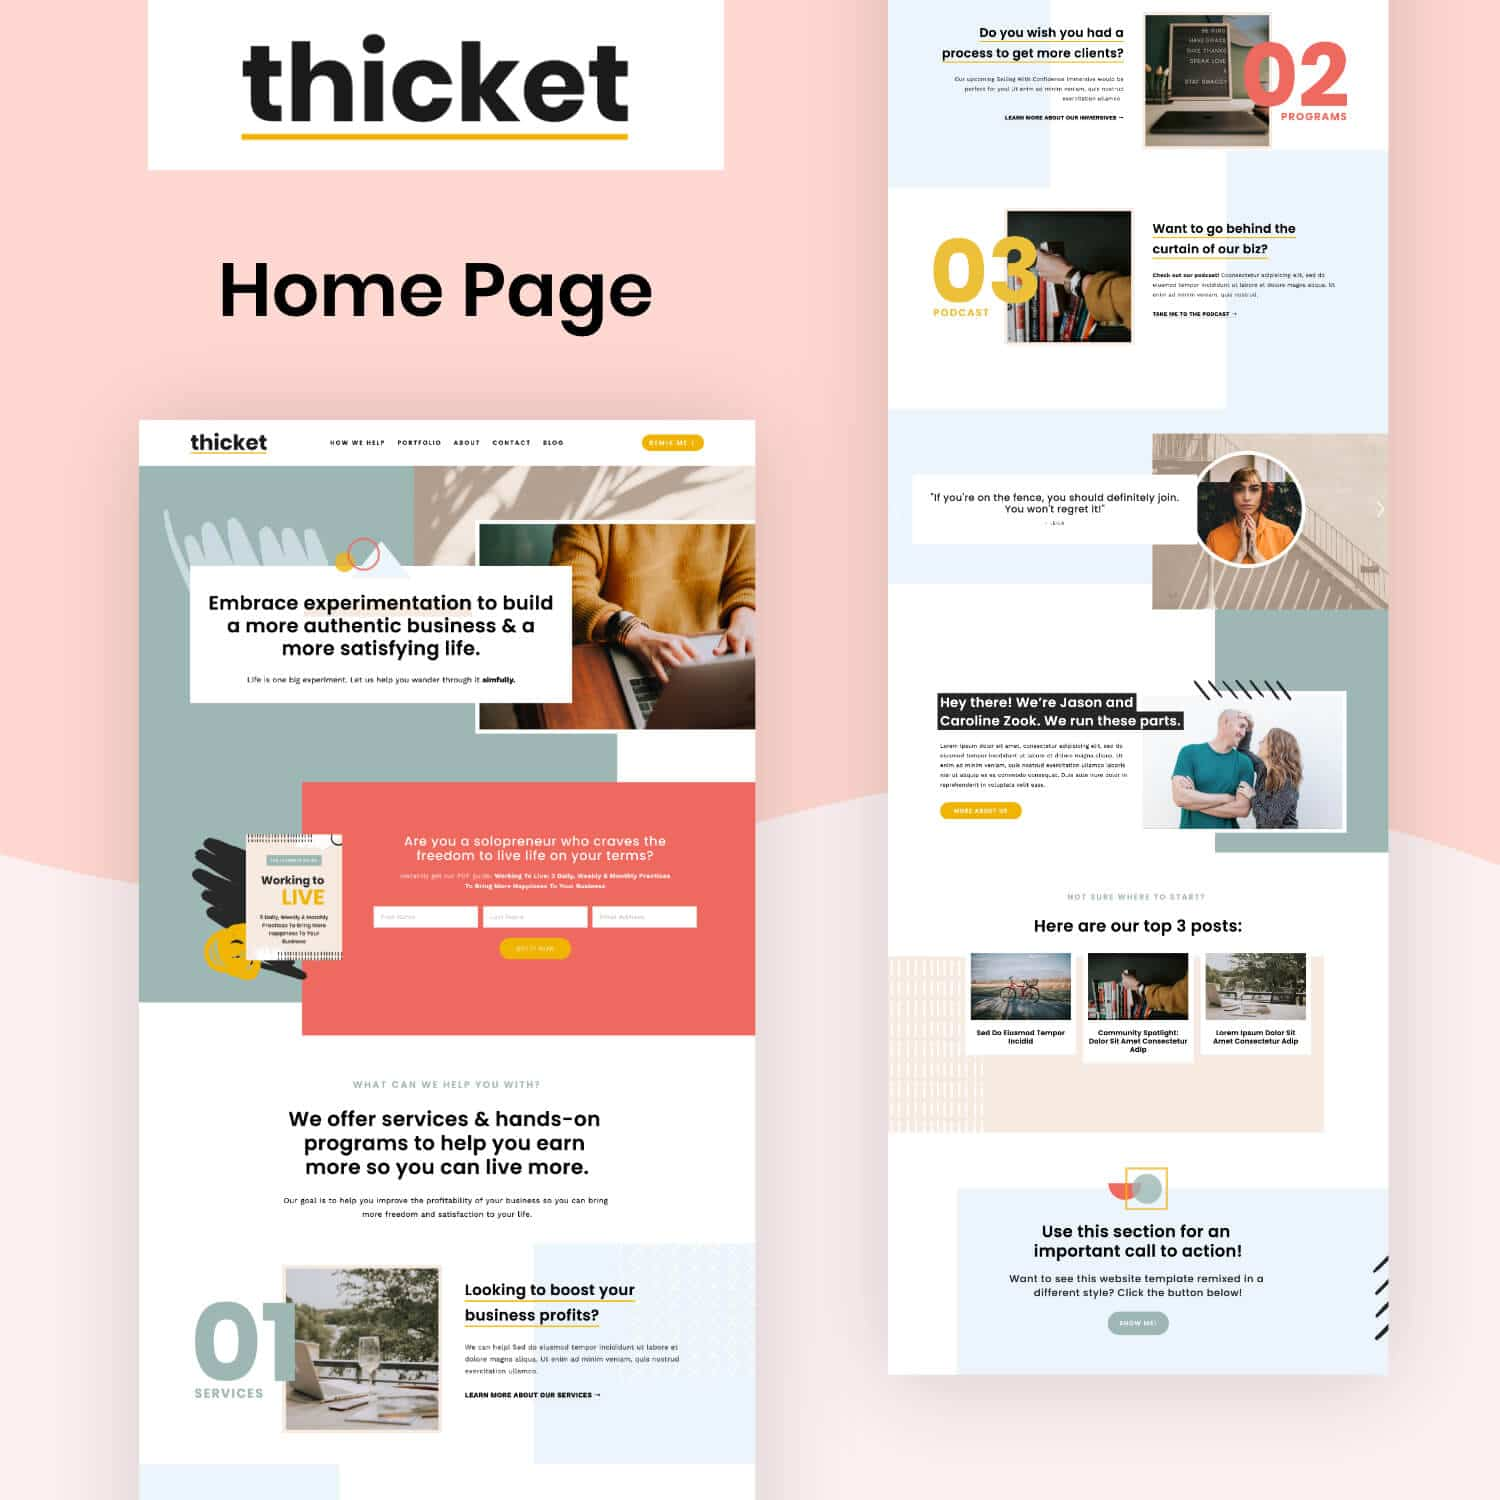 Thicket Home Page